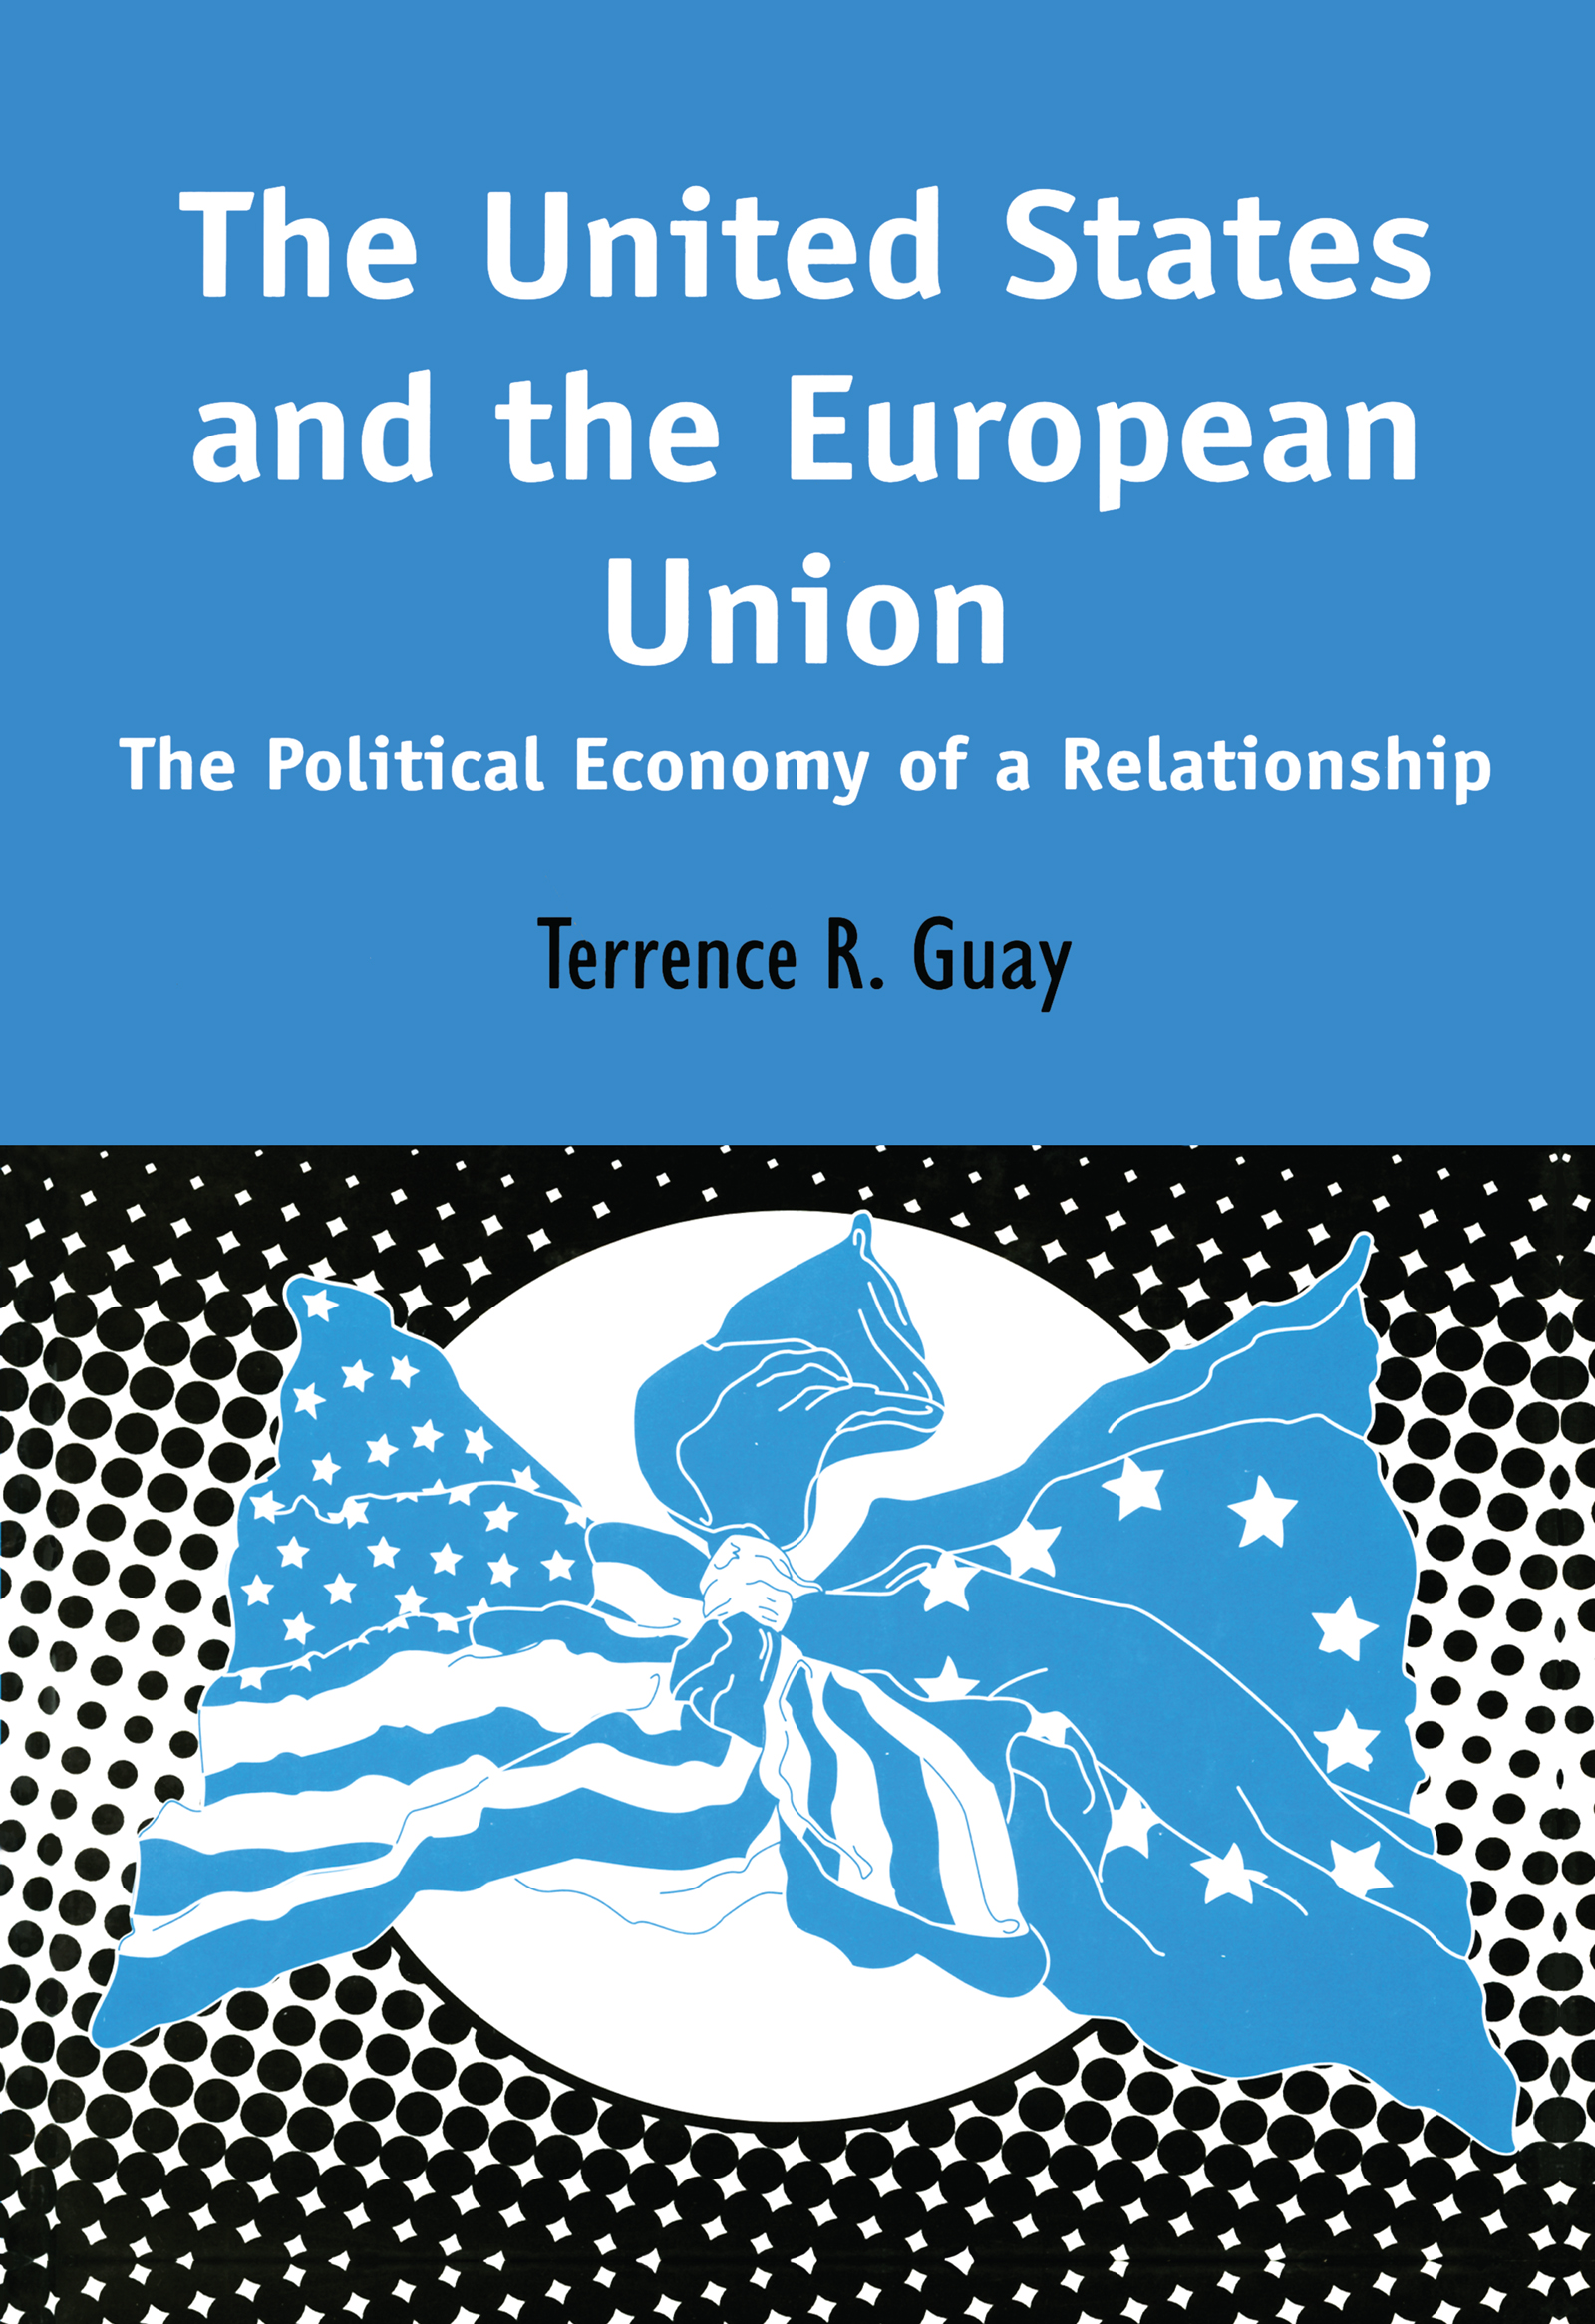 The United States and the European Union